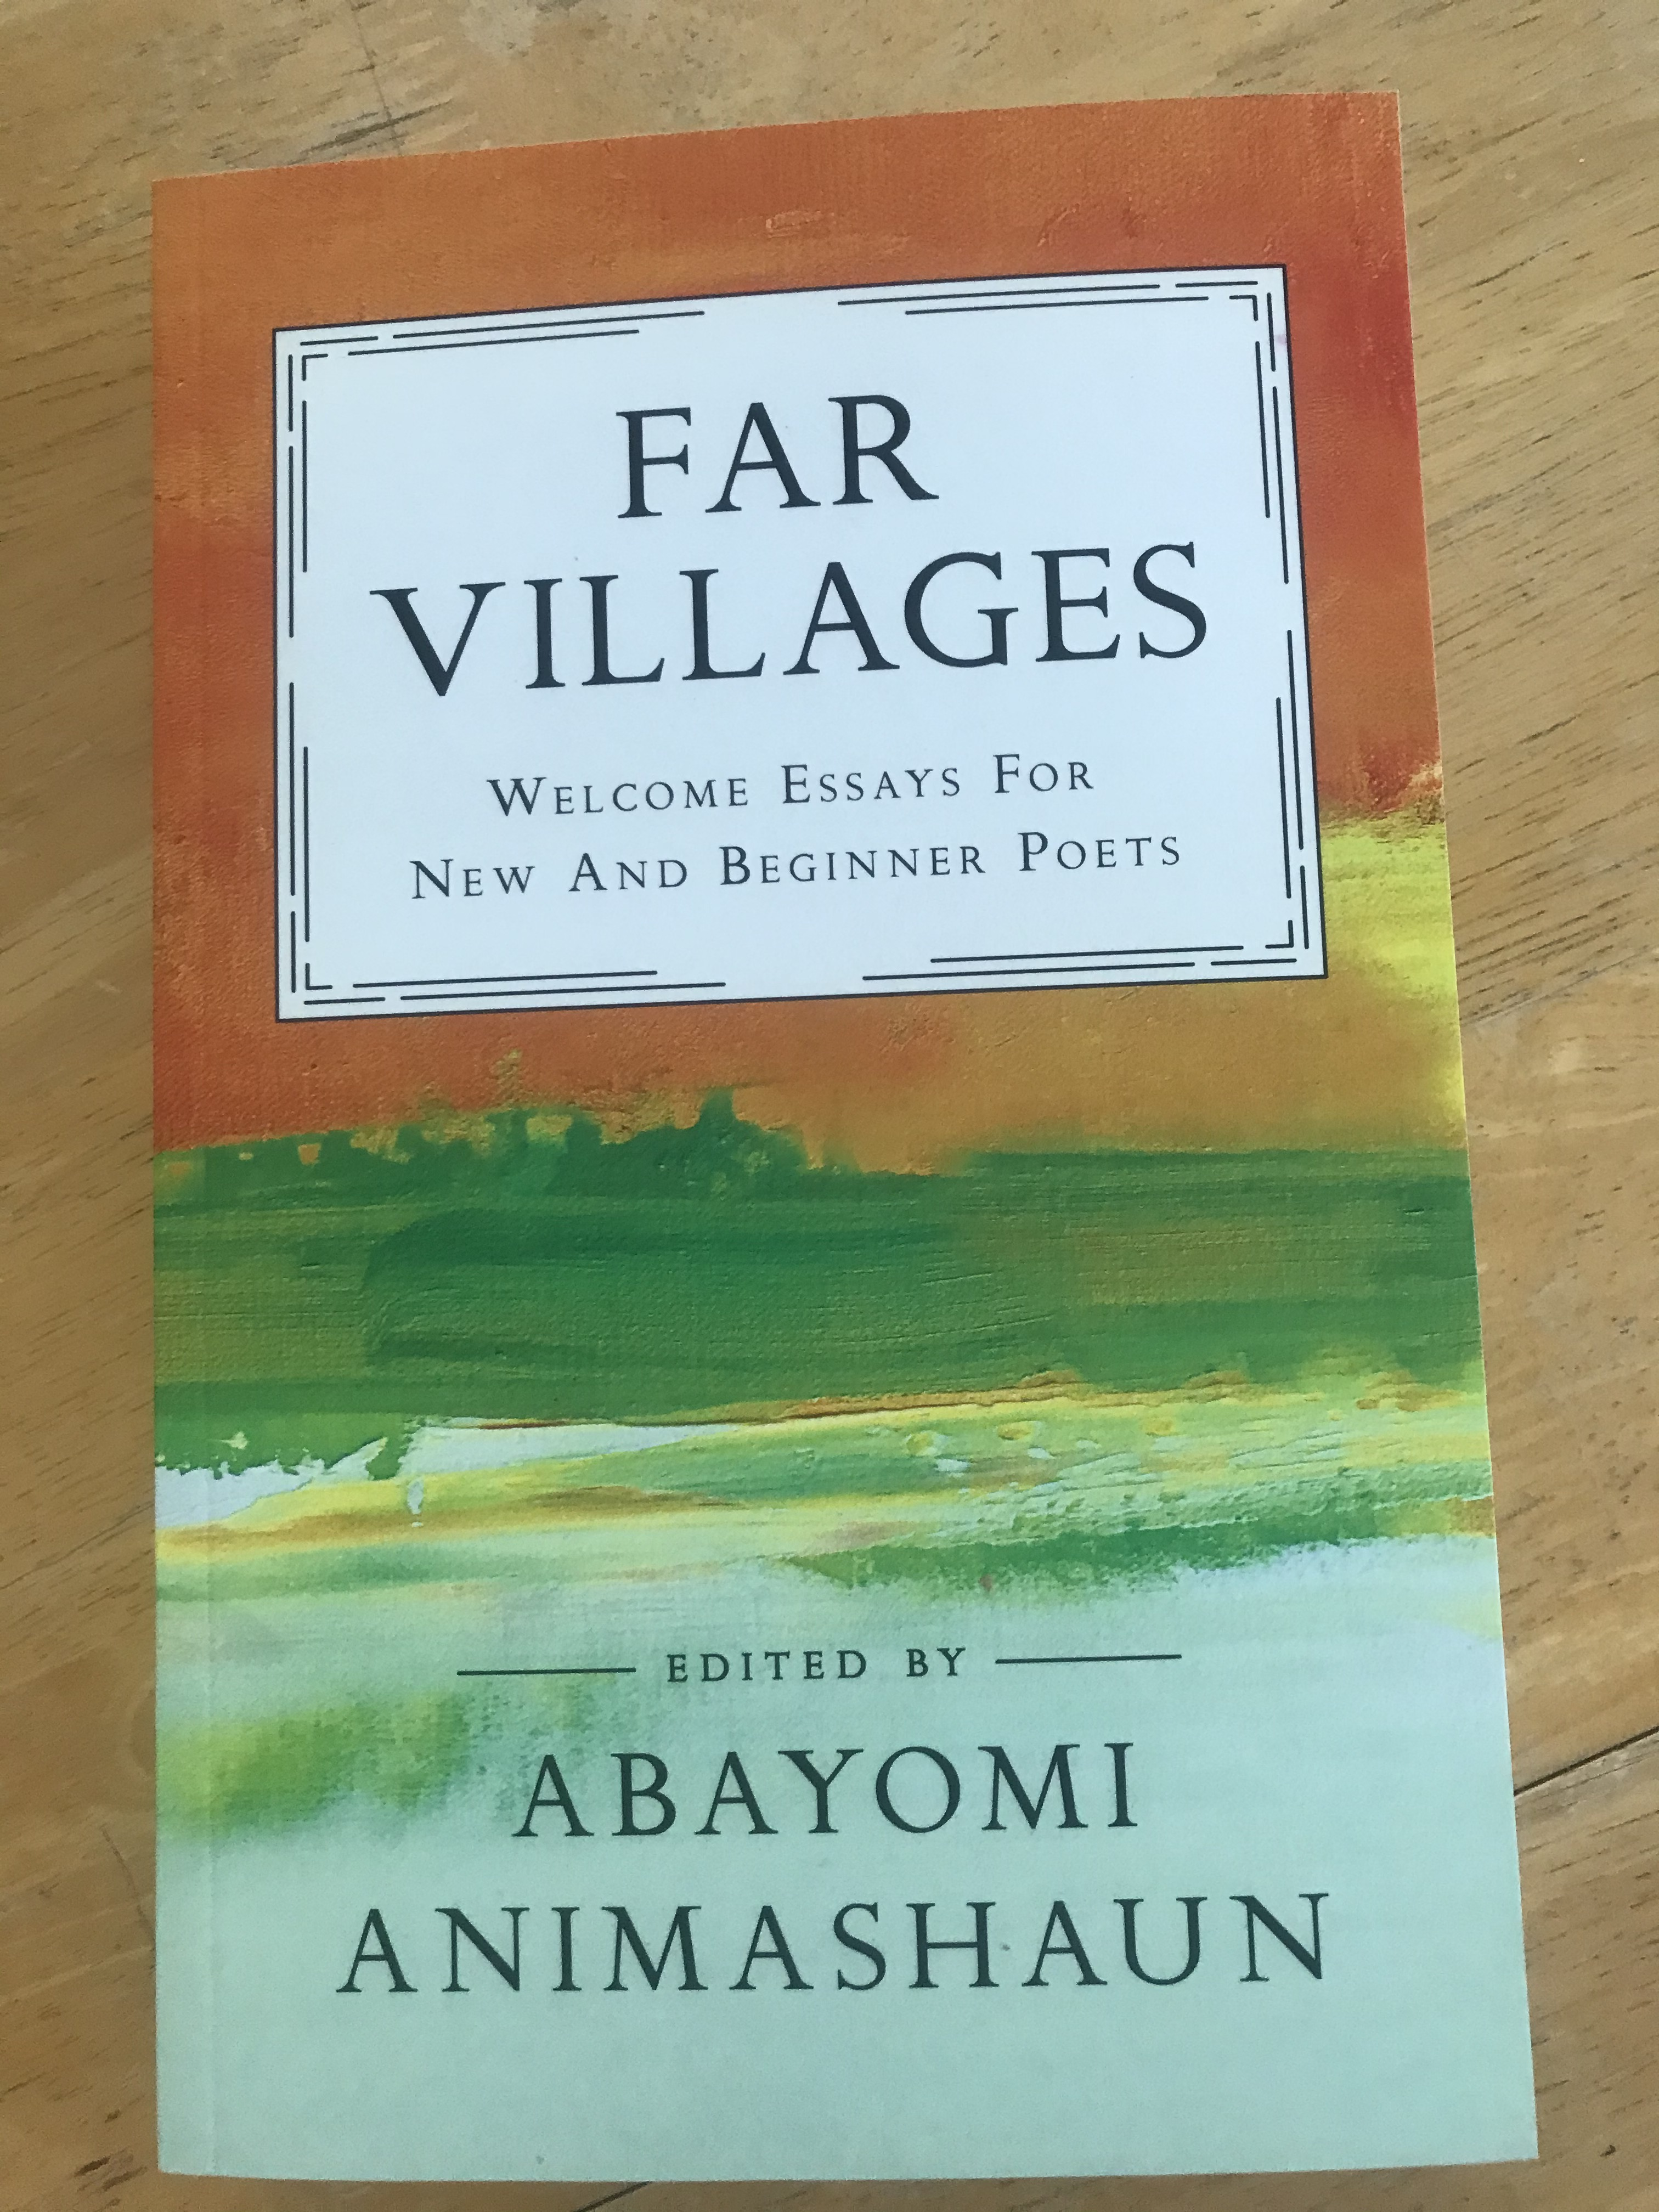 Far Villages: Welcome Essays for New and Beginner Poets